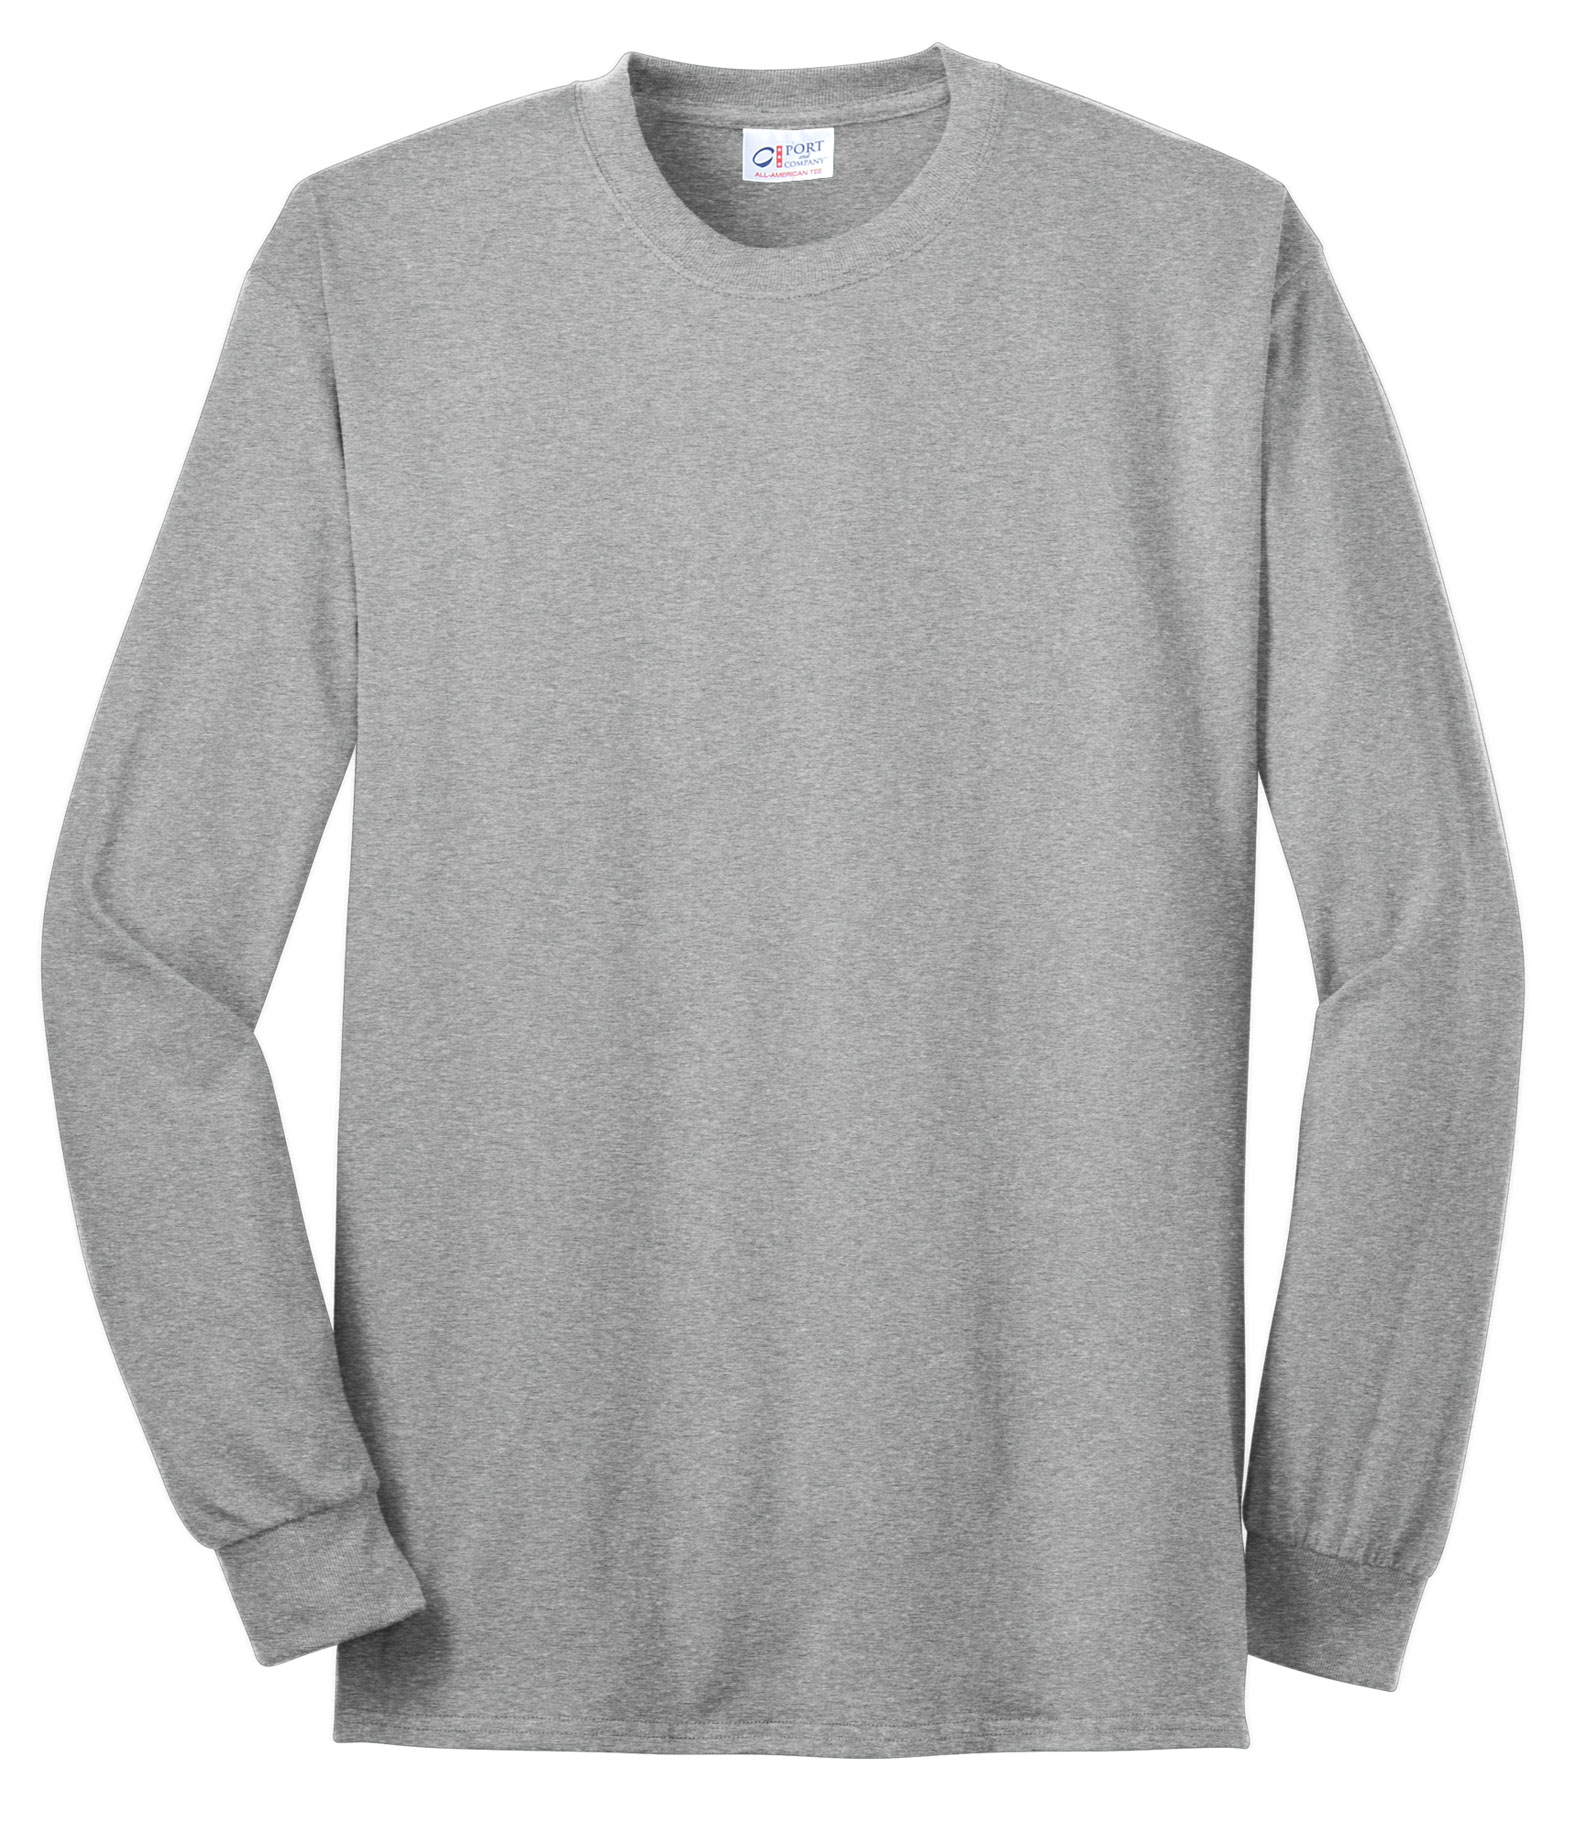 Adult Long Sleeve All-American Tee